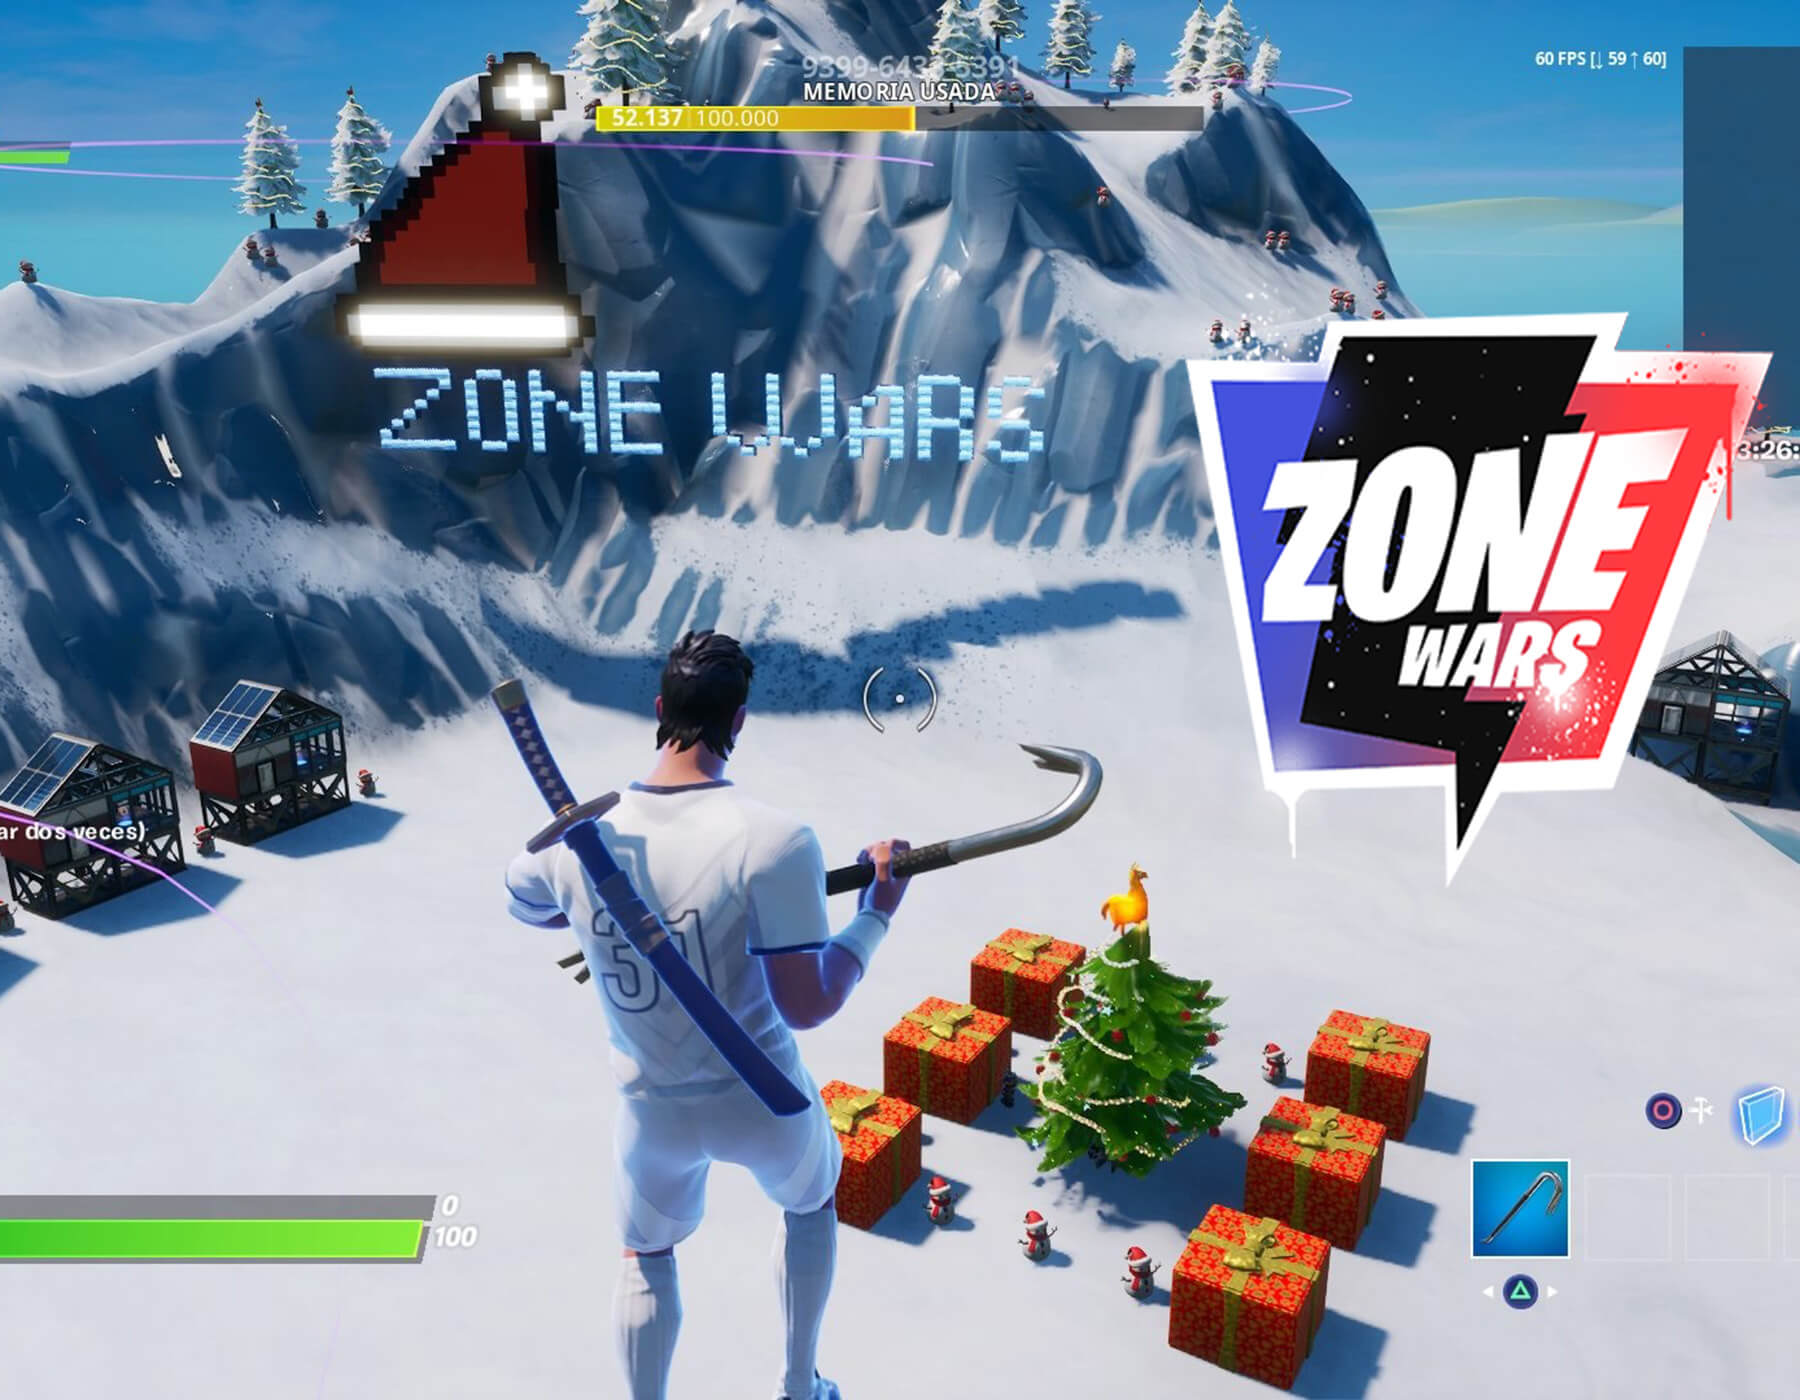 ZONE WARS: FROSTY HILL UP